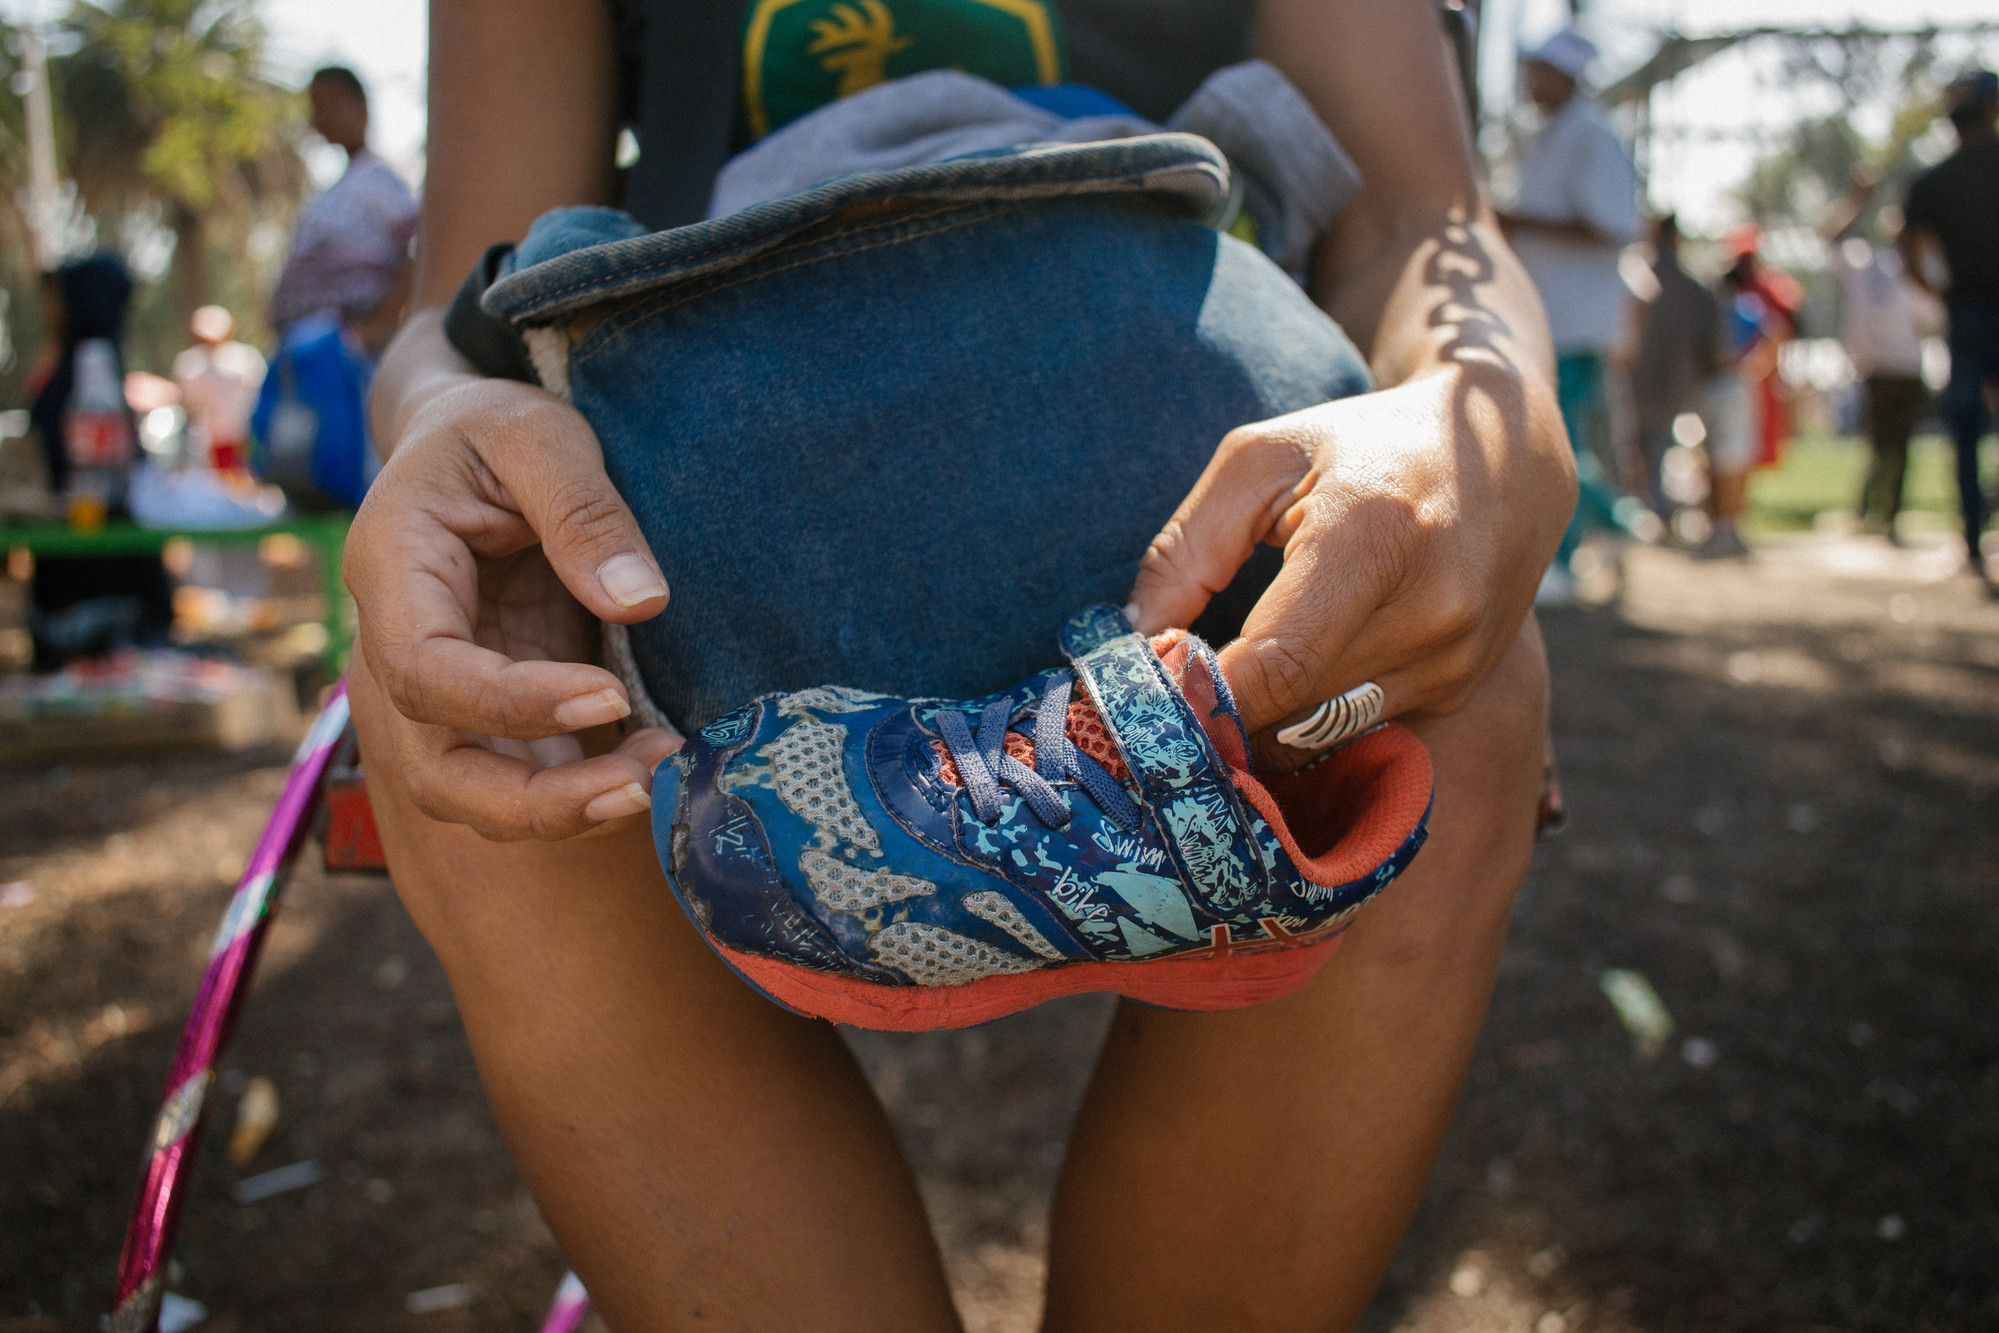 Claudia with Shoe | © Sergio Ortiz/Amnesty International